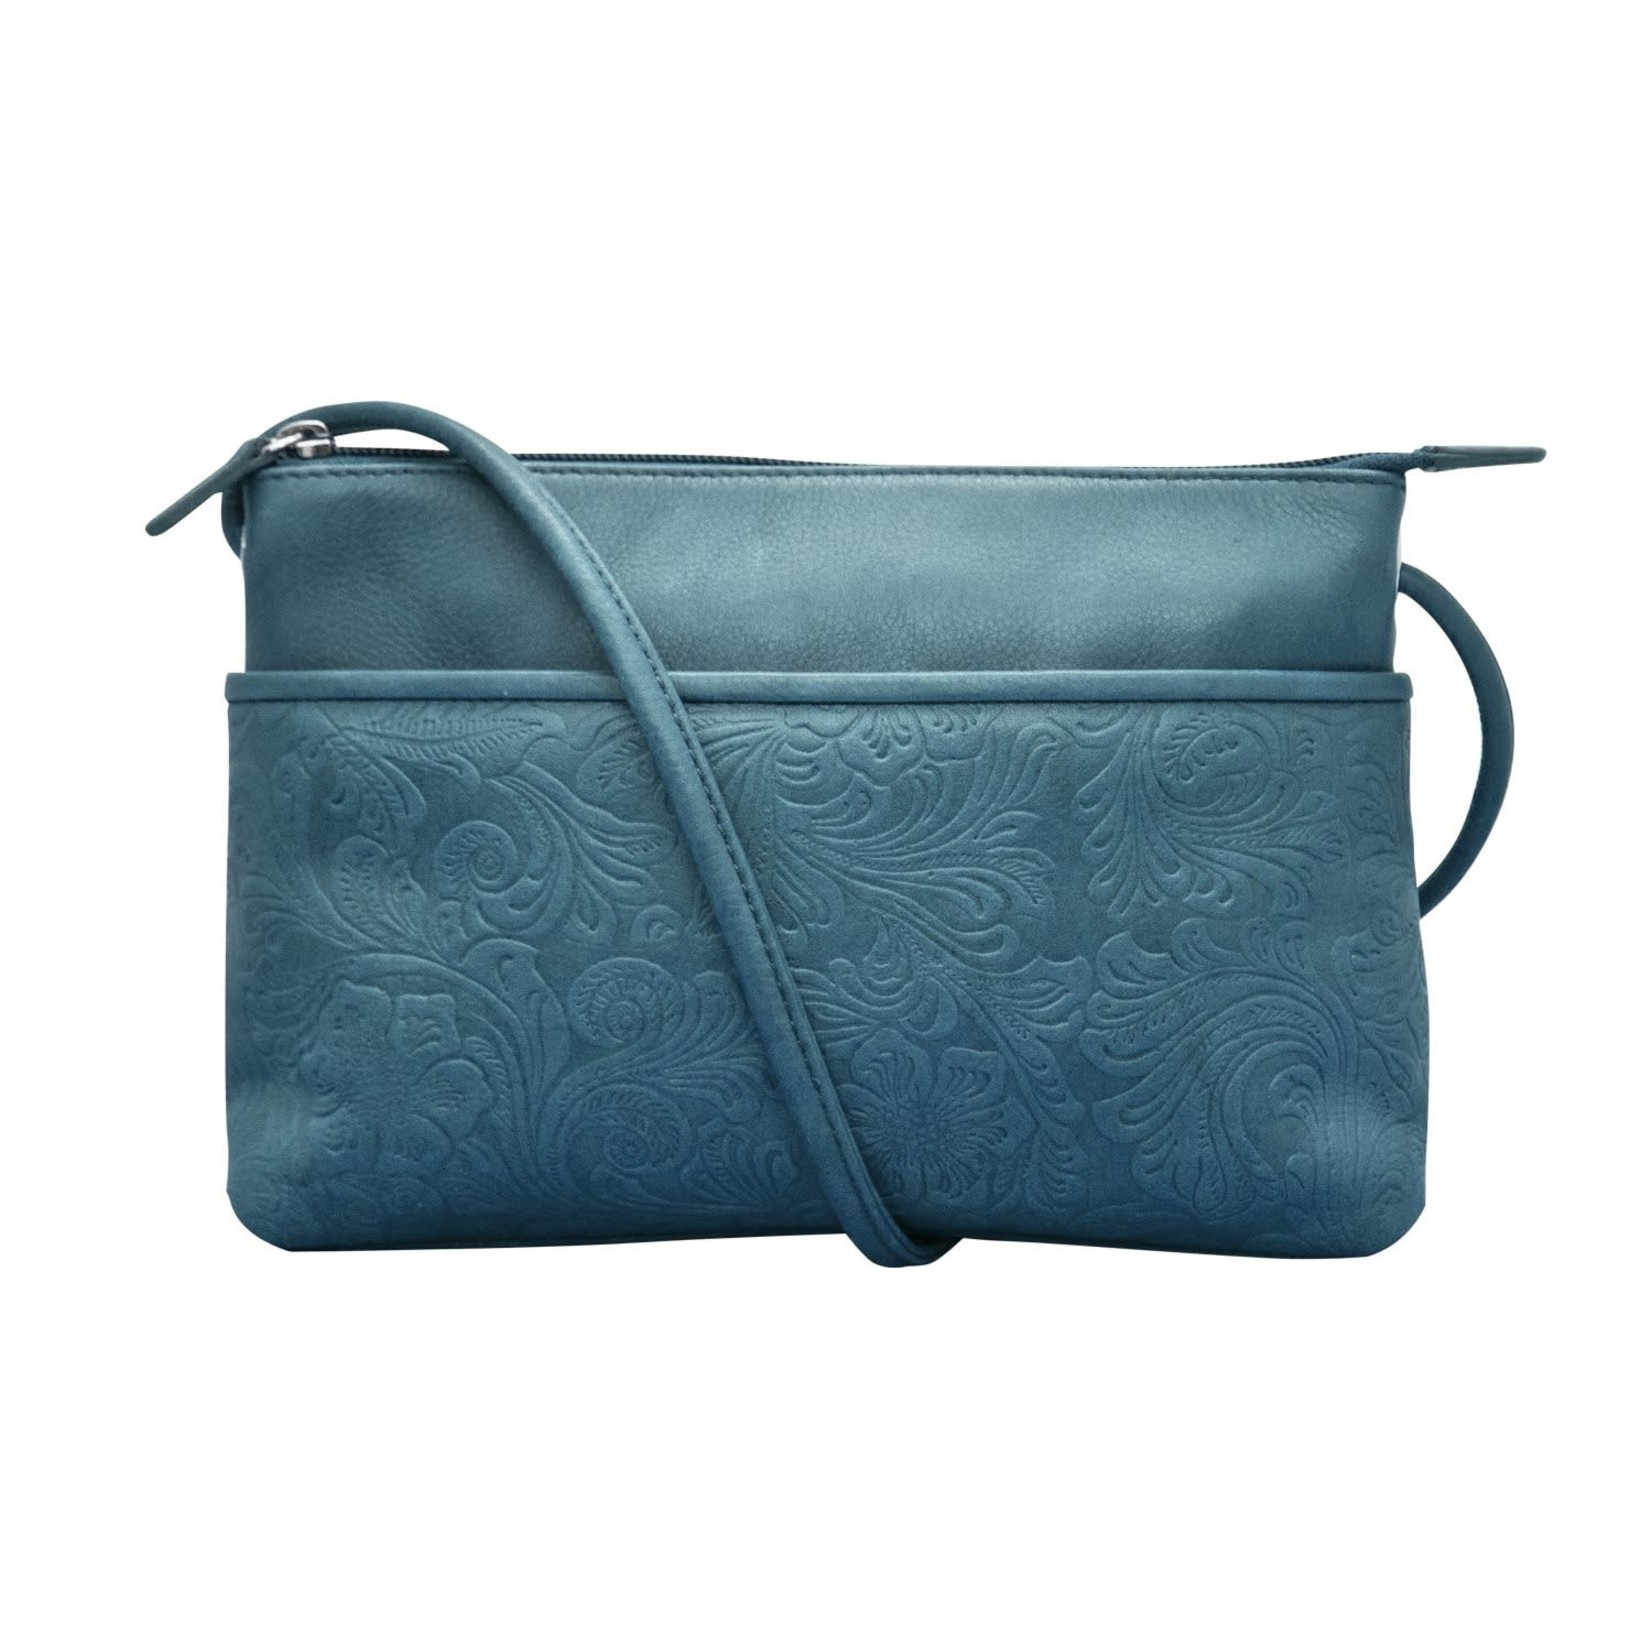 Leather Handbags and Accessories 6566 Jeans Blue - Cheyenne East West Crossbody